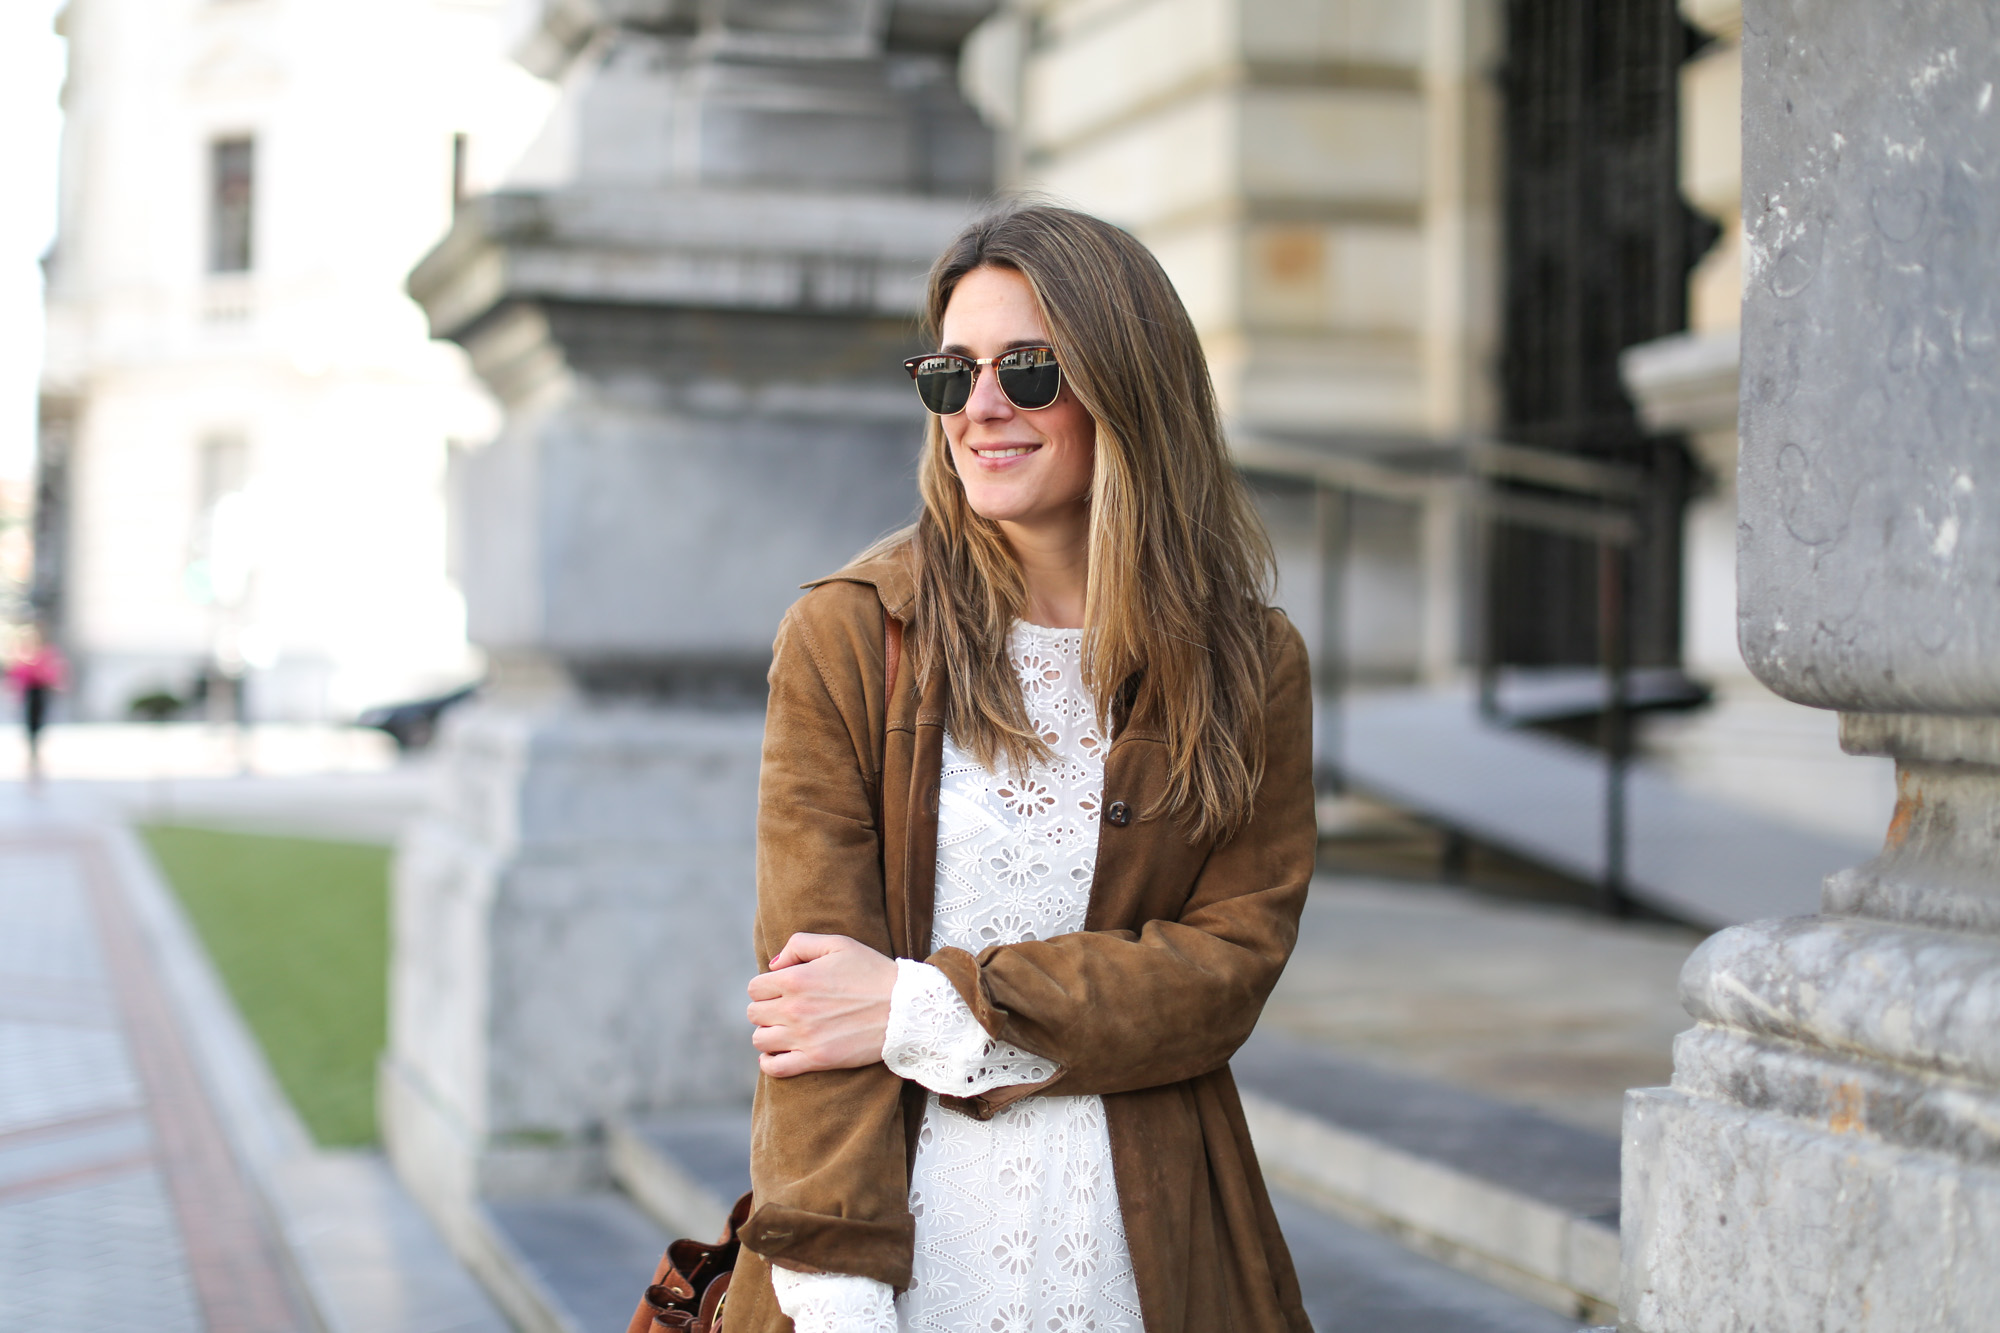 Clochet-streetstyle-zara-white-midi-embroidered-dress-with-full-skirt-suede-vintage-jacket-5